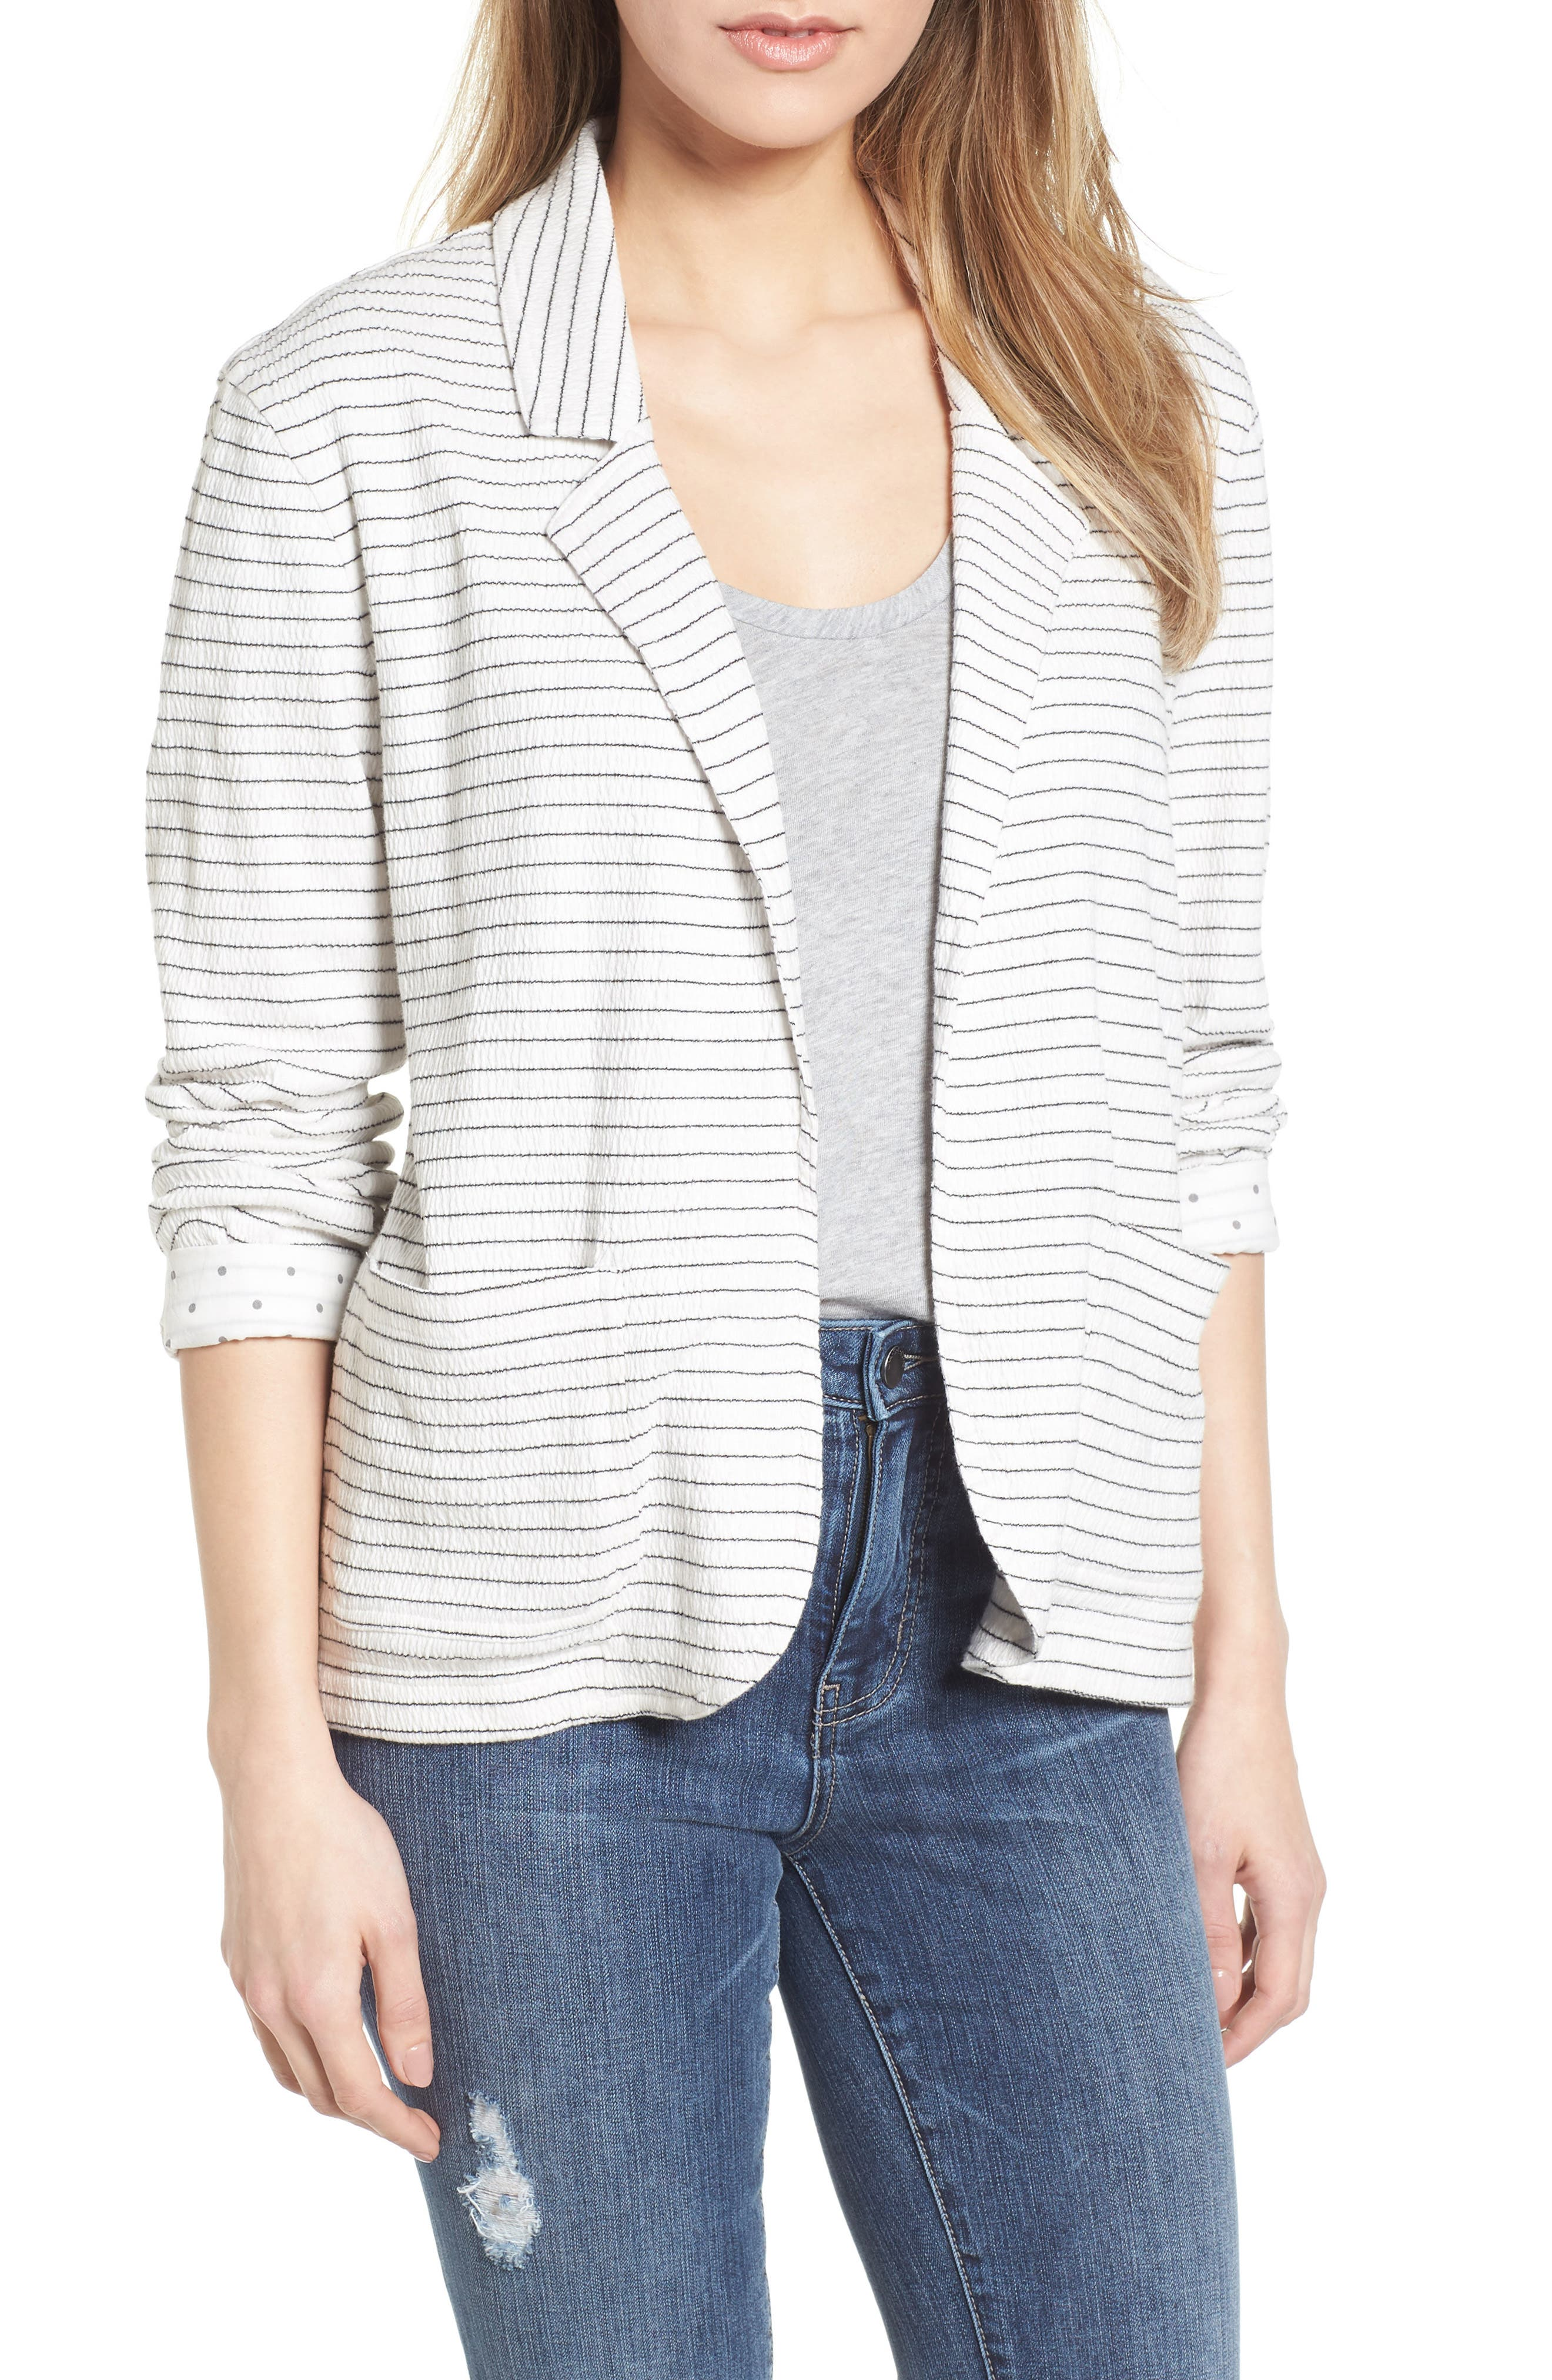 Crinkle Stretch Cotton Lined Blazer,                             Main thumbnail 1, color,                             Ivory- Black Stripe